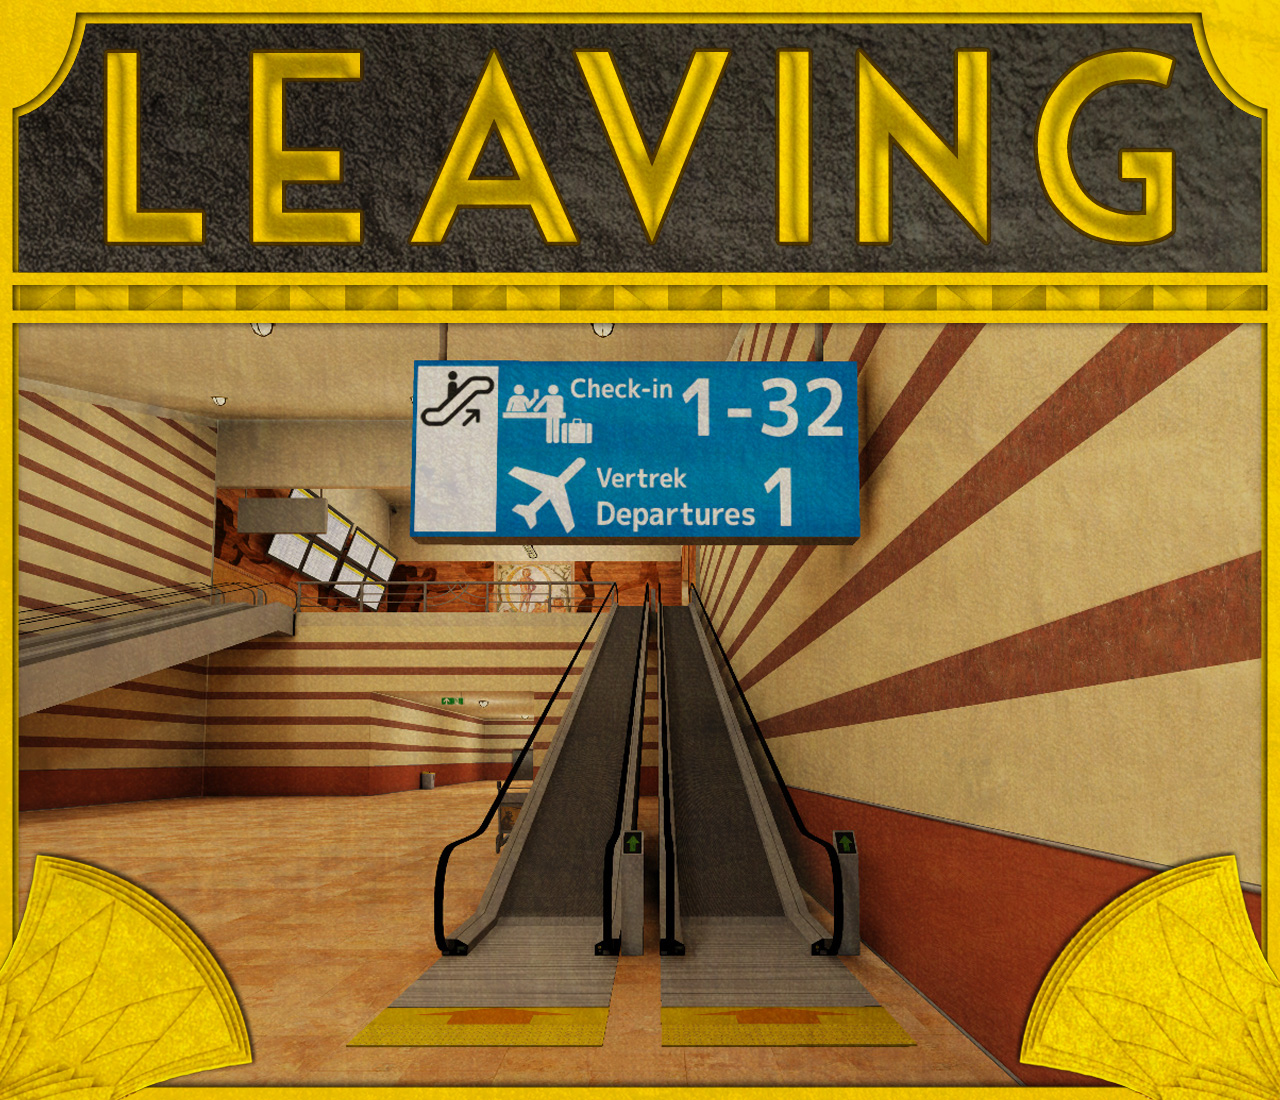 Leaving - Art Deco Frame.png